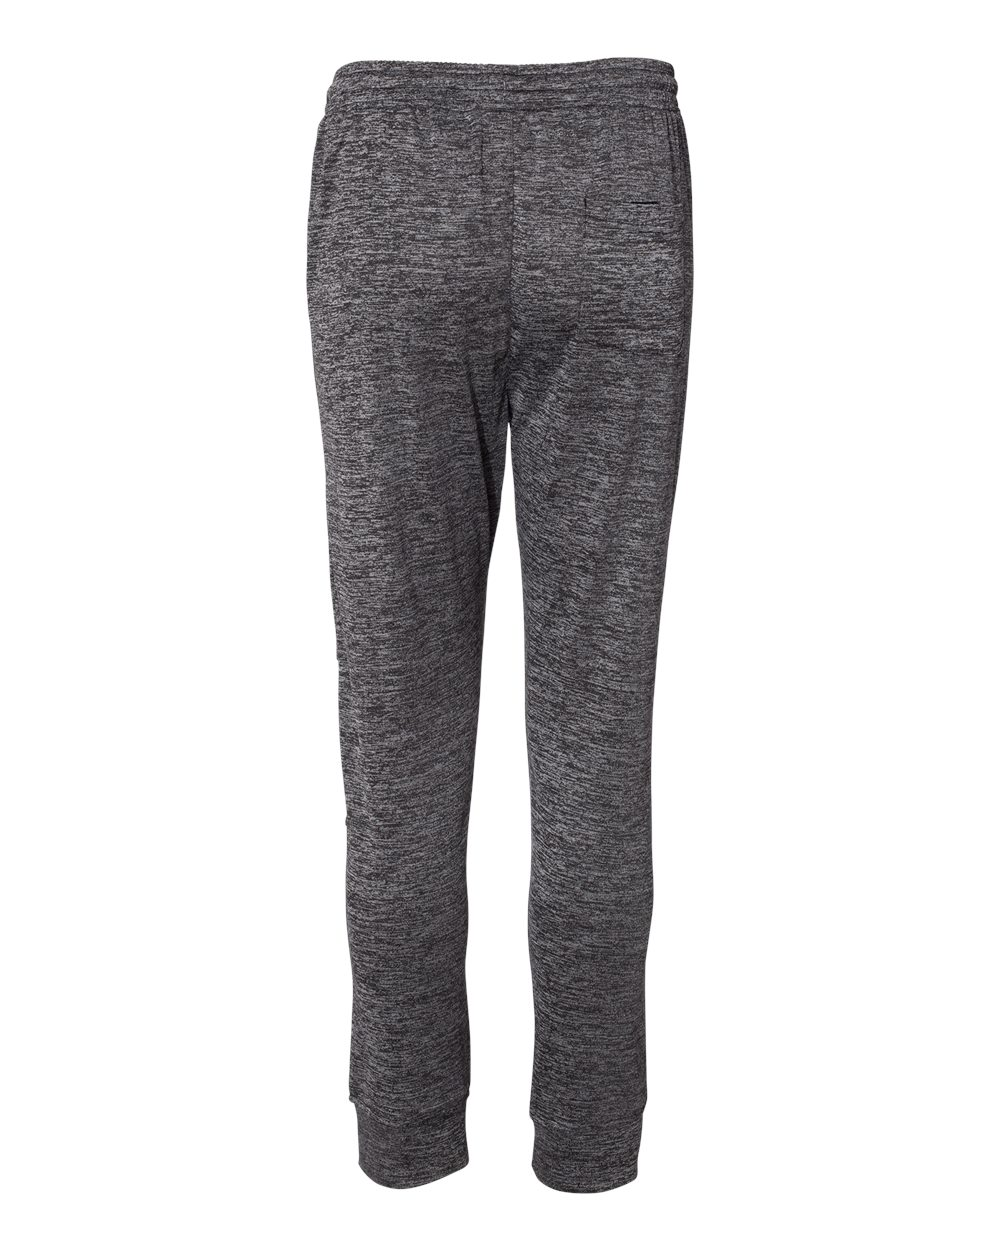 Burnside-Mens-Heather-Performance-Joggers-Pants-8801-up-to-3XL thumbnail 10